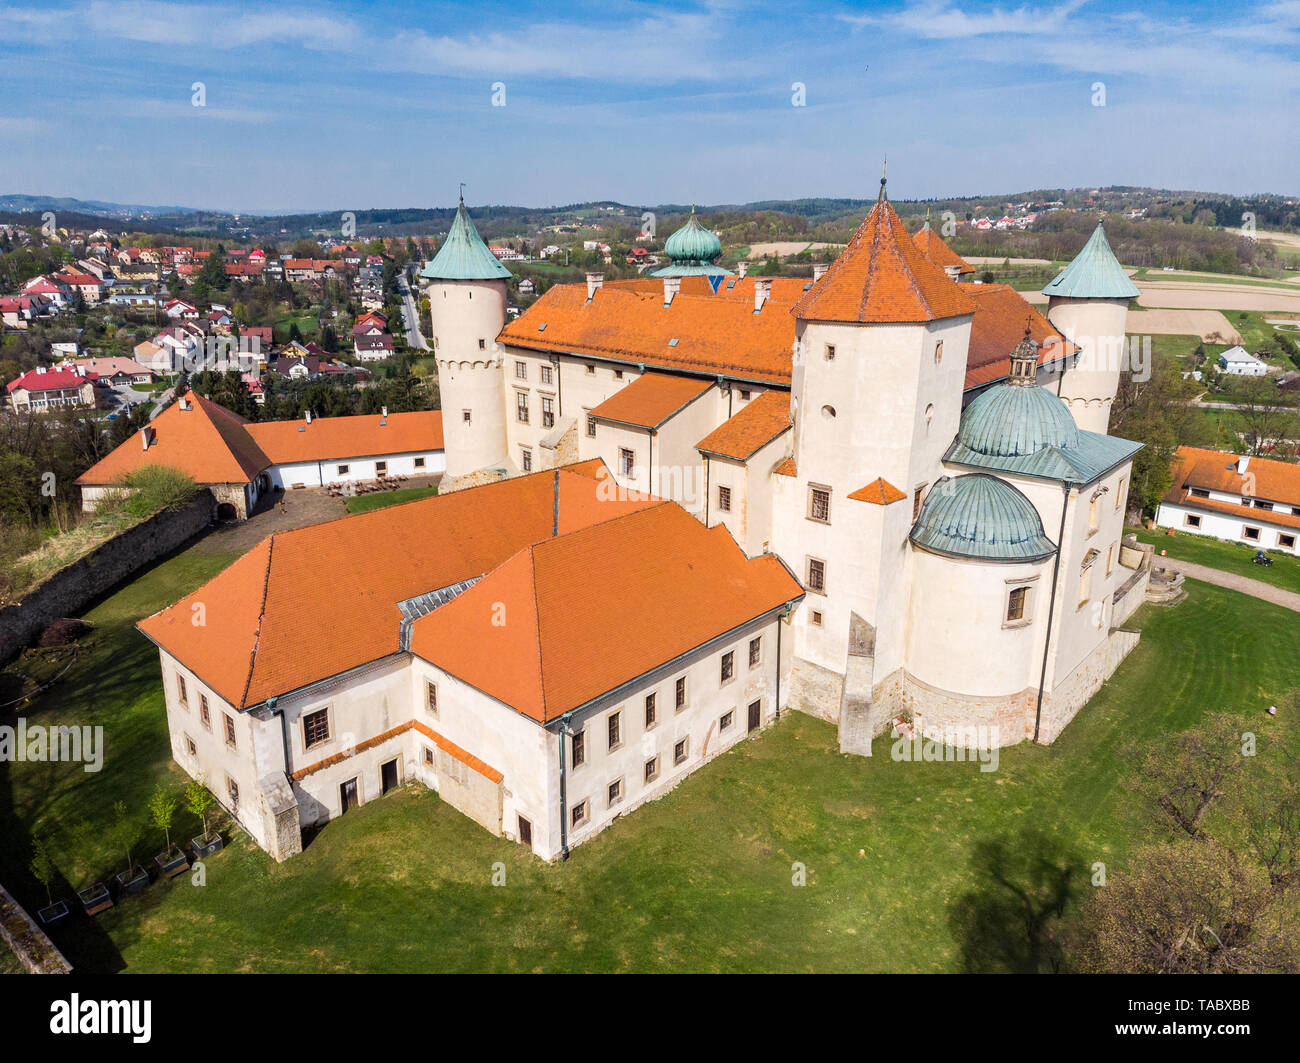 NOWY WISNICZ, POLAND - APRIL 25, 2019: Aerial view of Renaissance and Baroque Castle in Nowy Wisnicz, near Tarnow, in spring scenery,Poland. - Stock Image